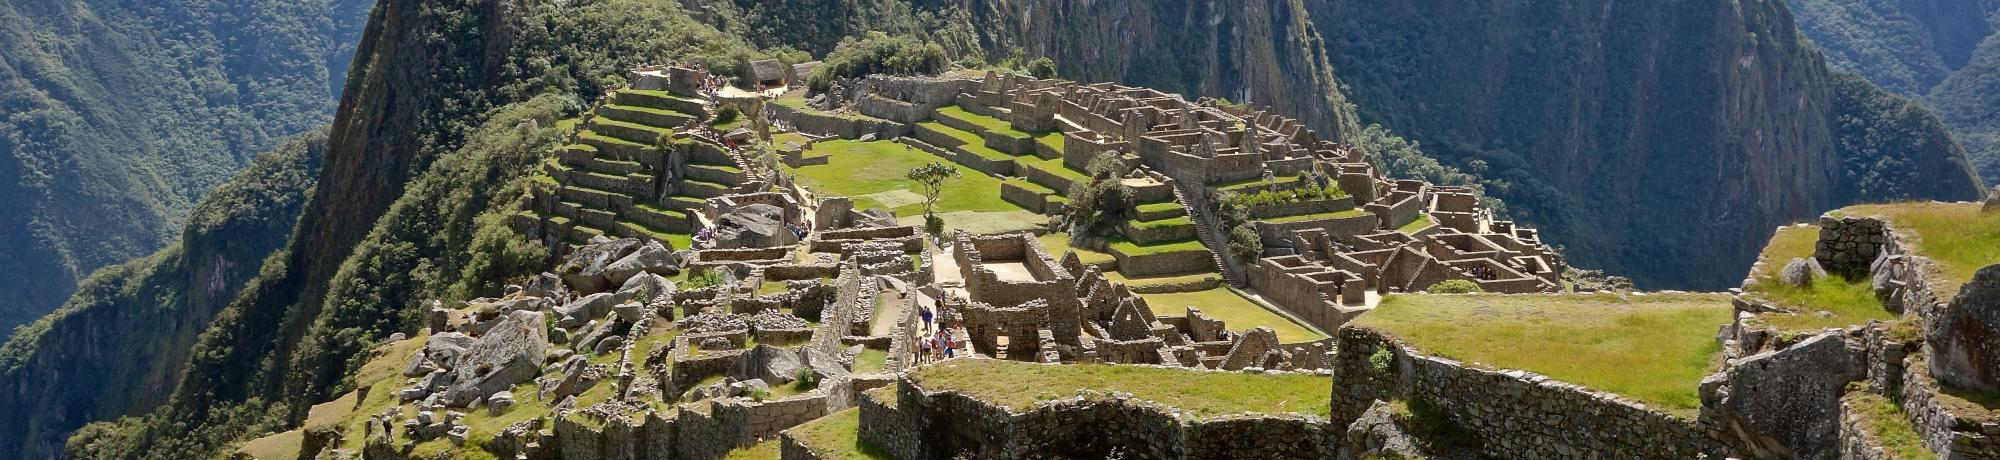 UC Davis Study Abroad, Summer Abroad Peru, Into the Andes Program, Header Image, Travel Page